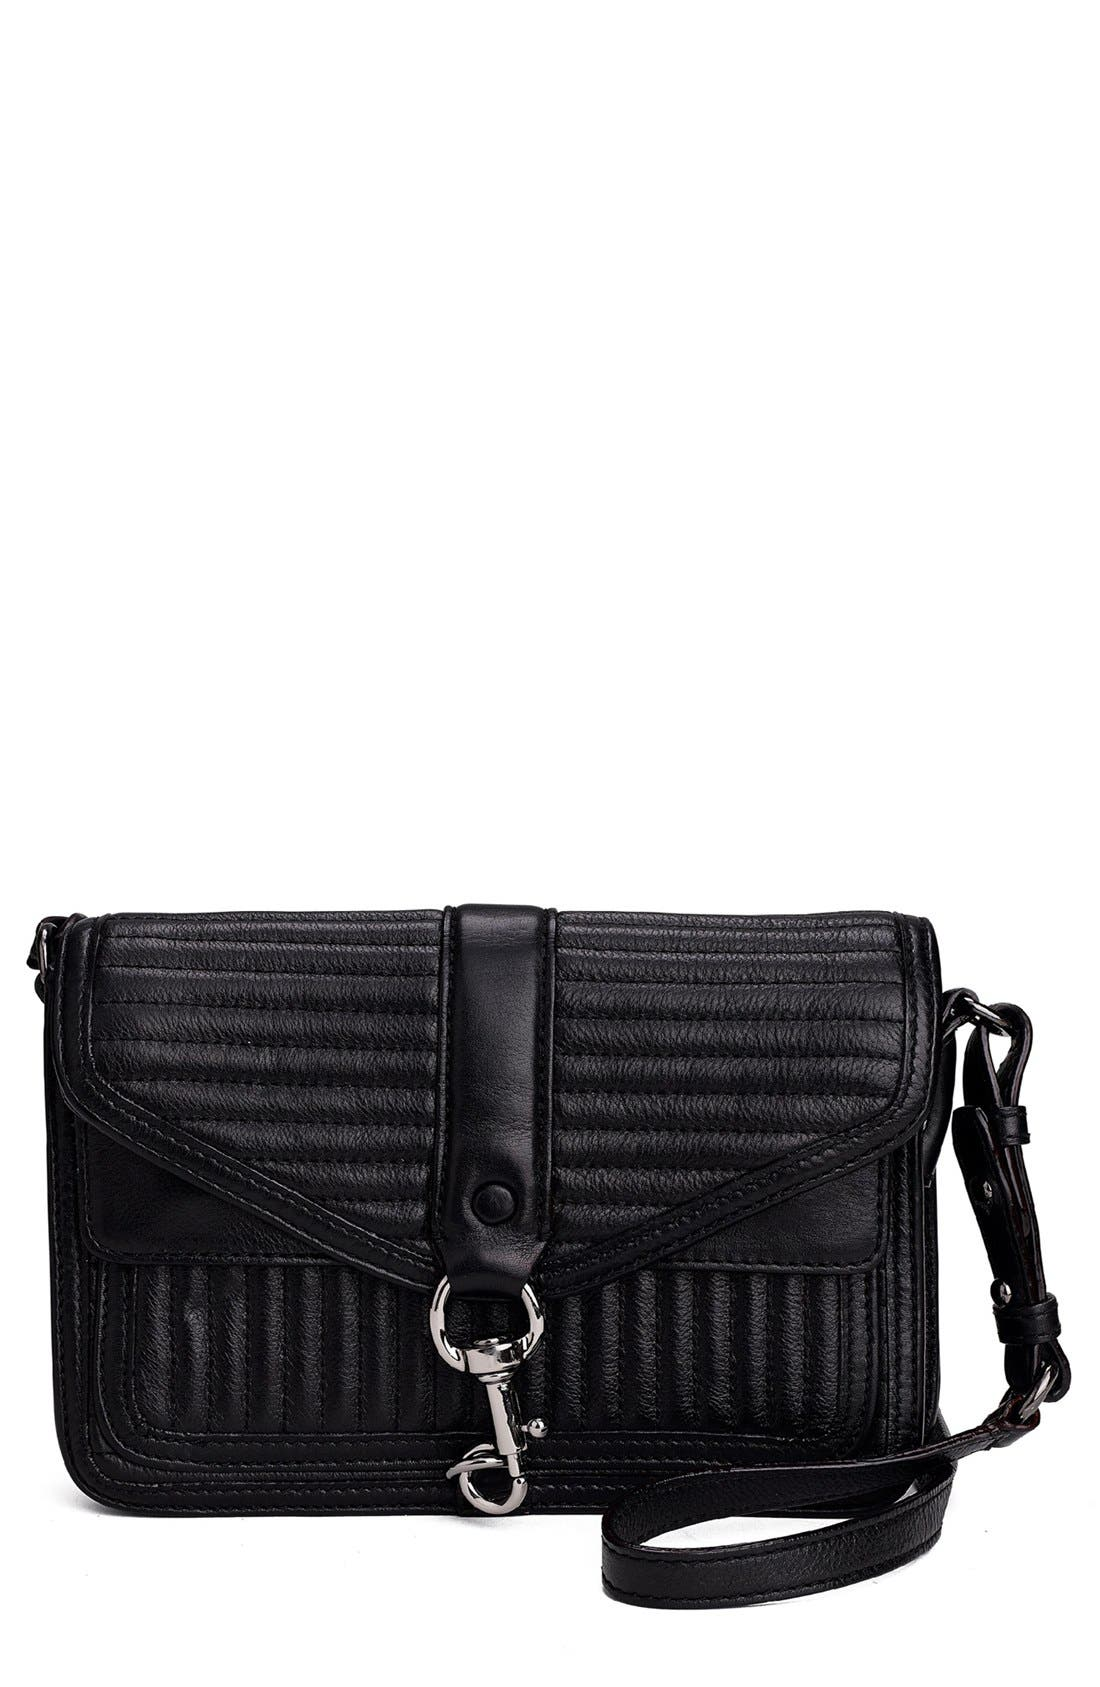 Alternate Image 1 Selected - Rebecca Minkoff 'Hudson - Moto Mini' Crossbody Bag